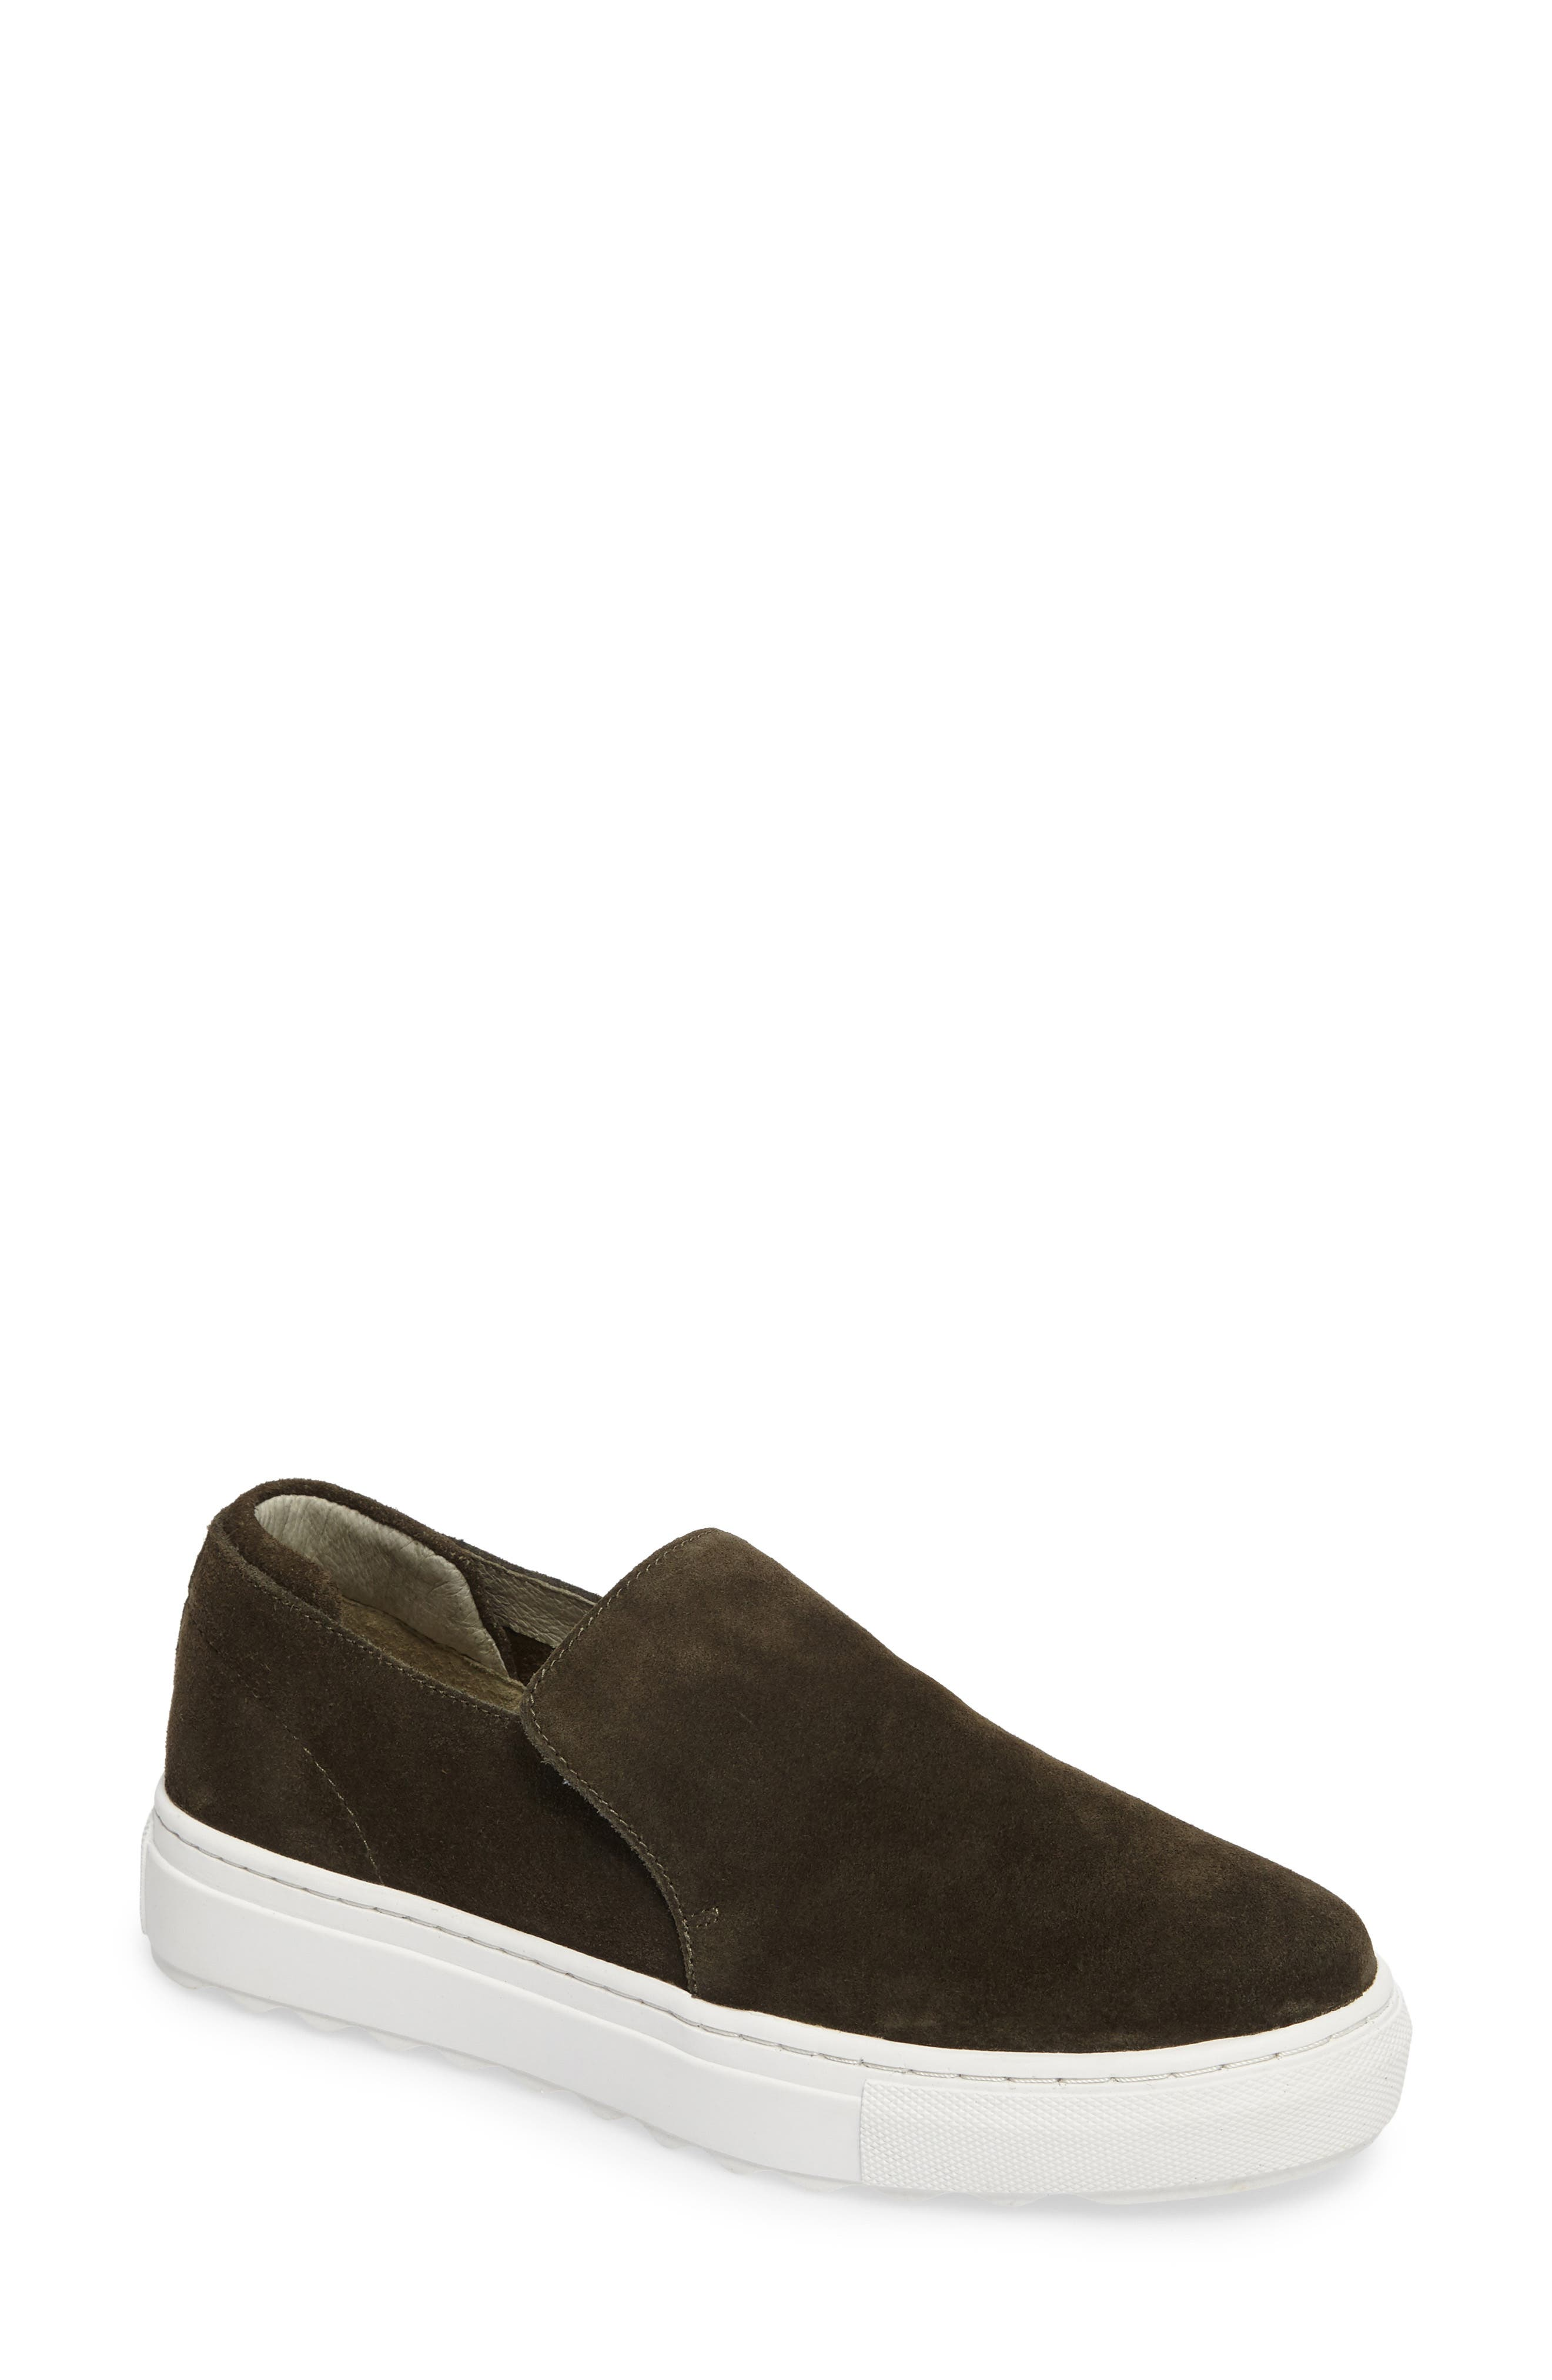 Perrie Platform Slip-On,                             Main thumbnail 6, color,